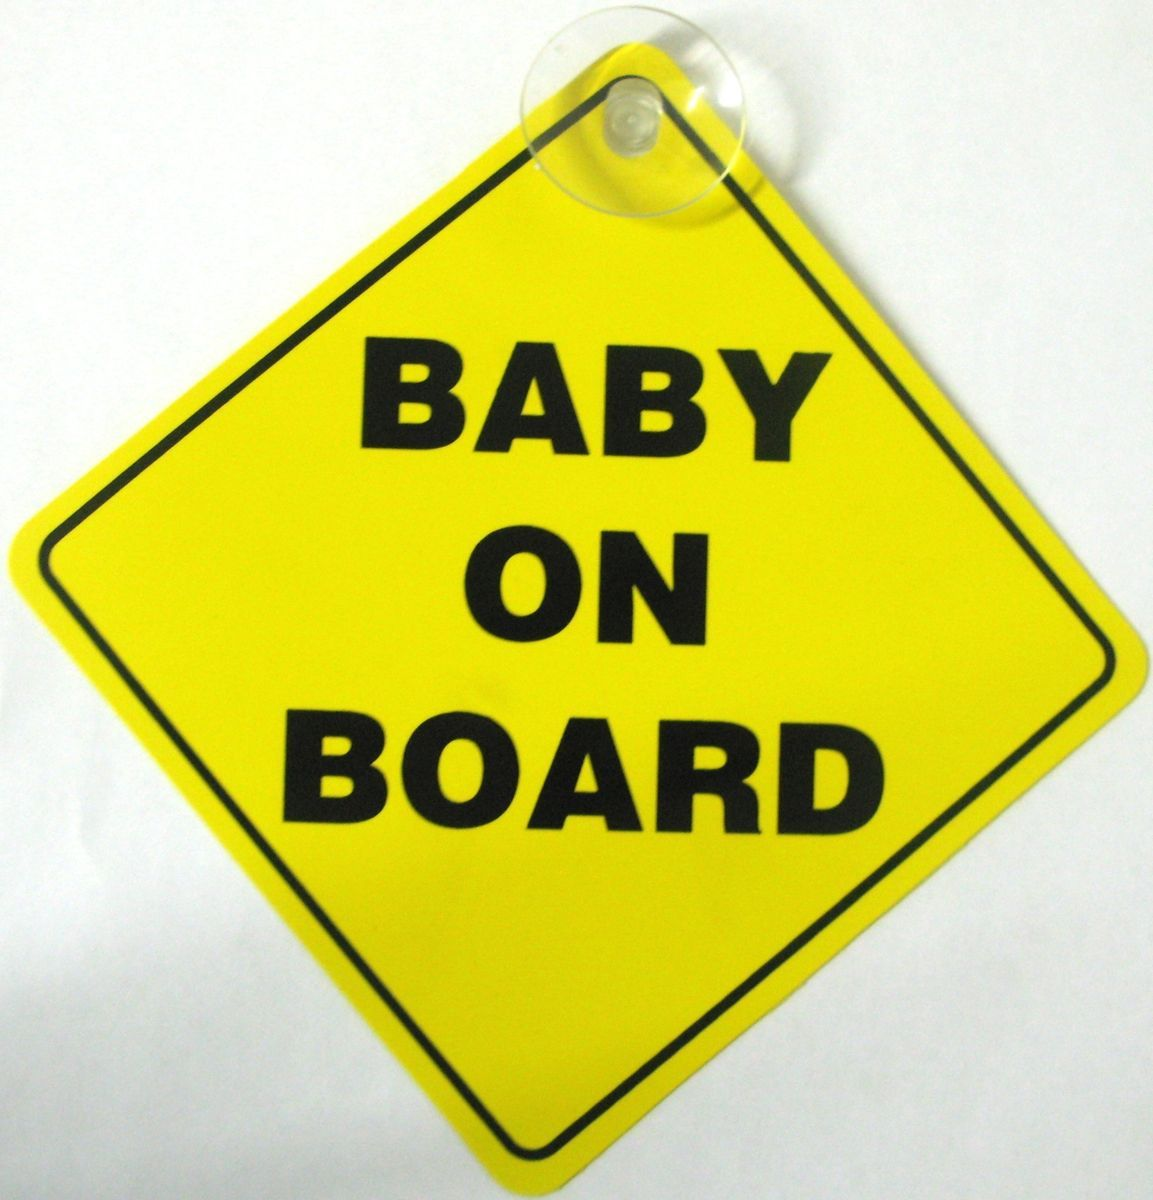 BABY ON BOARD SAFETY CAR WINDOW SUCTION CUP YELLOW WARNING SIGN